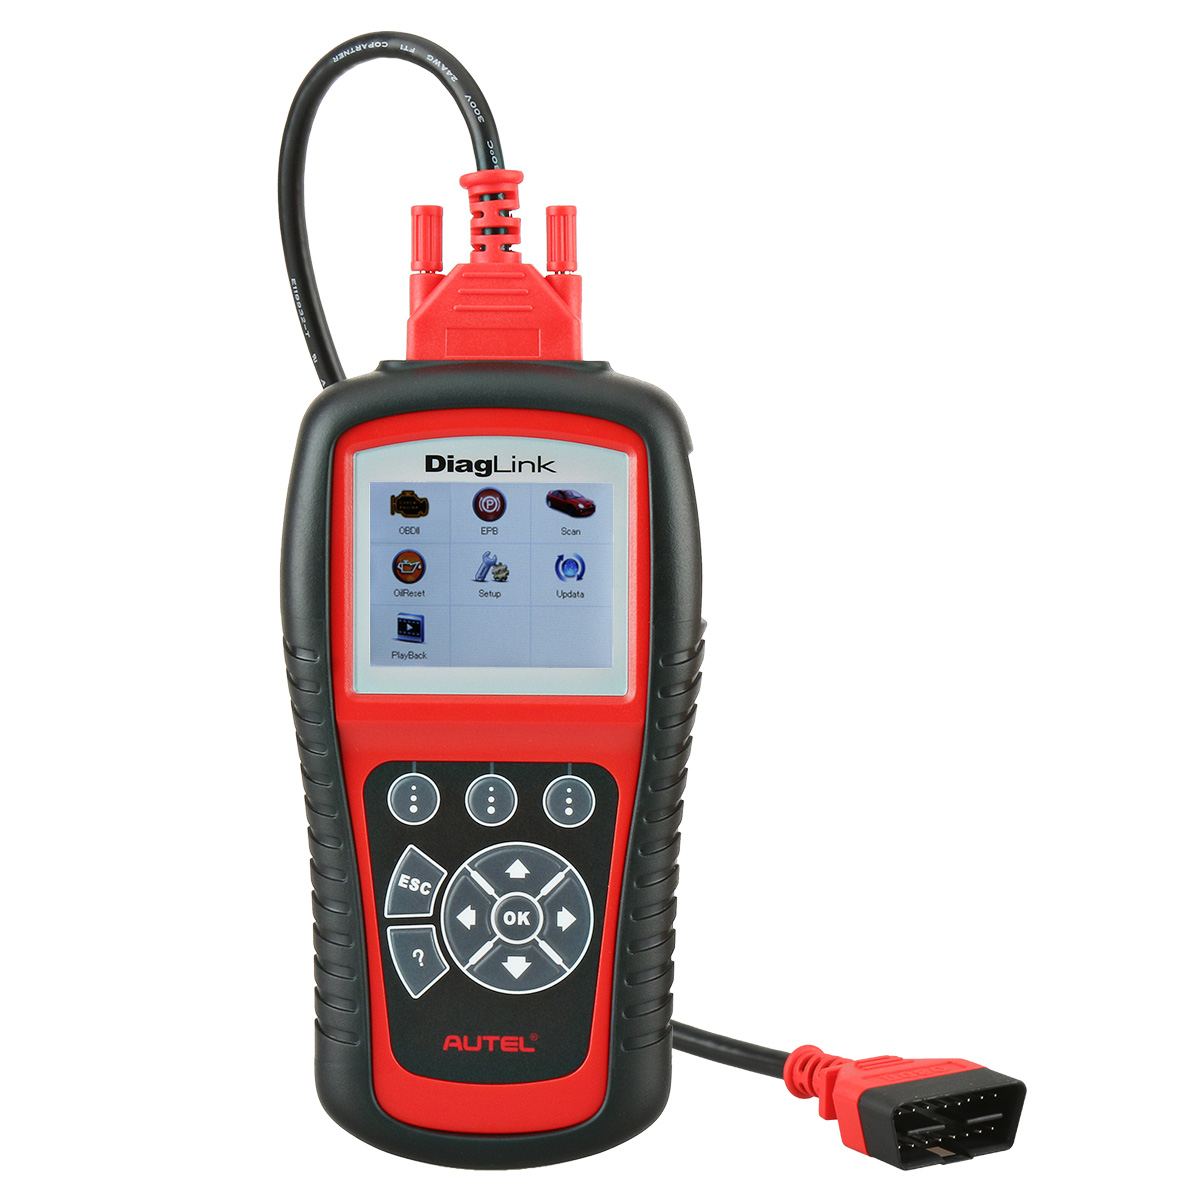 Autel Diaglink OBDII/EOBD CAN Multi-System Scanner Tool with Auto Scan OLS, EPB and ABS Maintenance(Diagnose Single Brand of All Models)